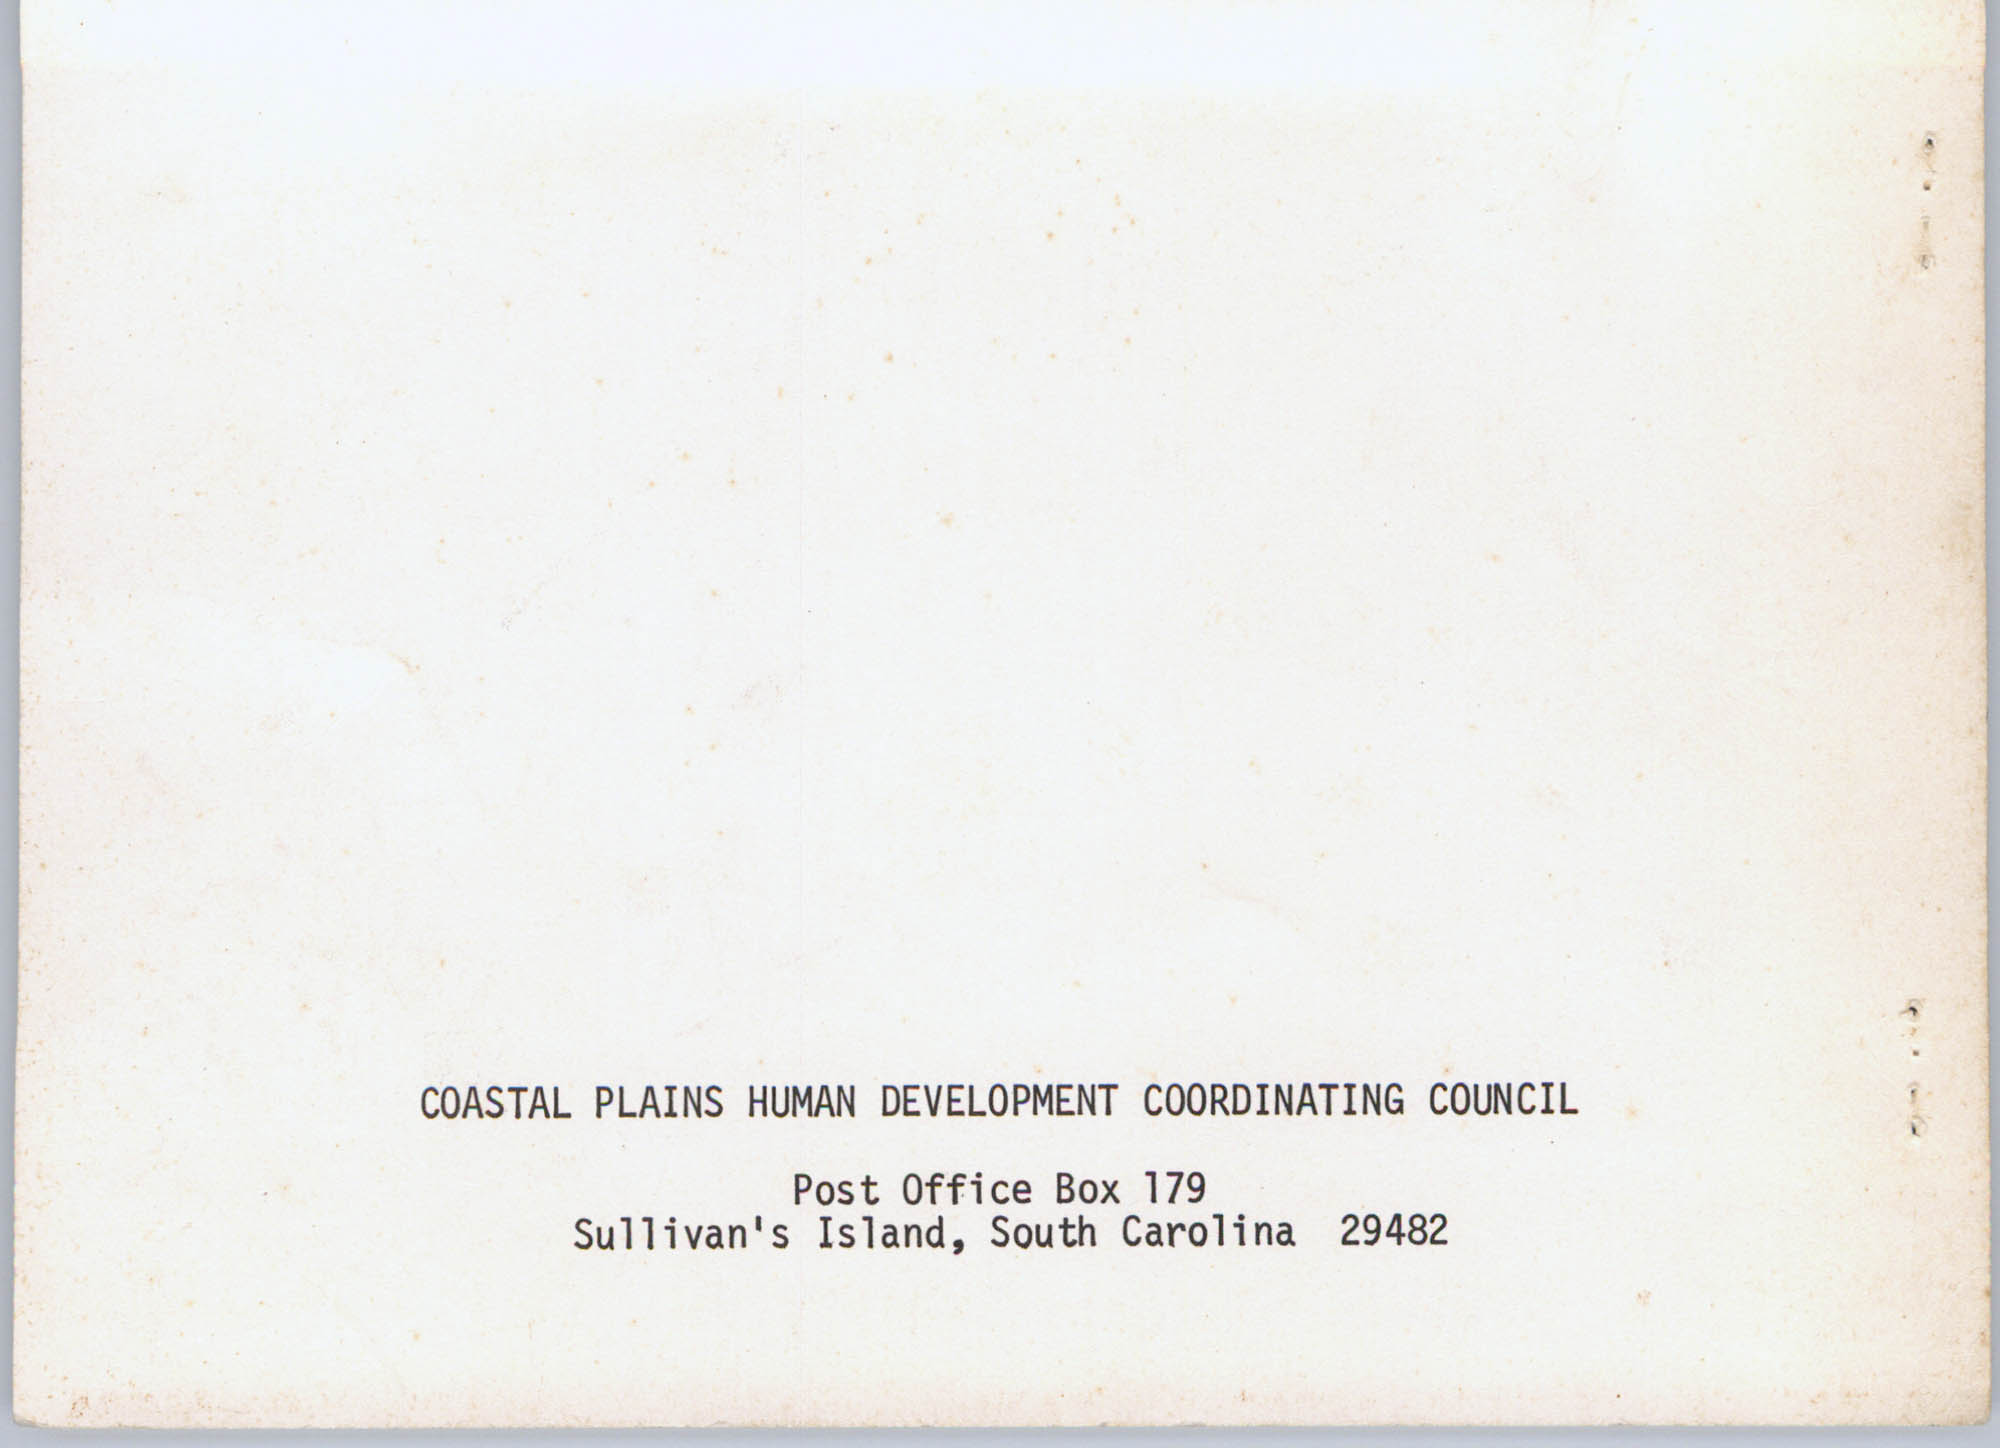 Coastal Plains Human Development Coordinating Council, 1974 Annual Report, Back Cover Exterior